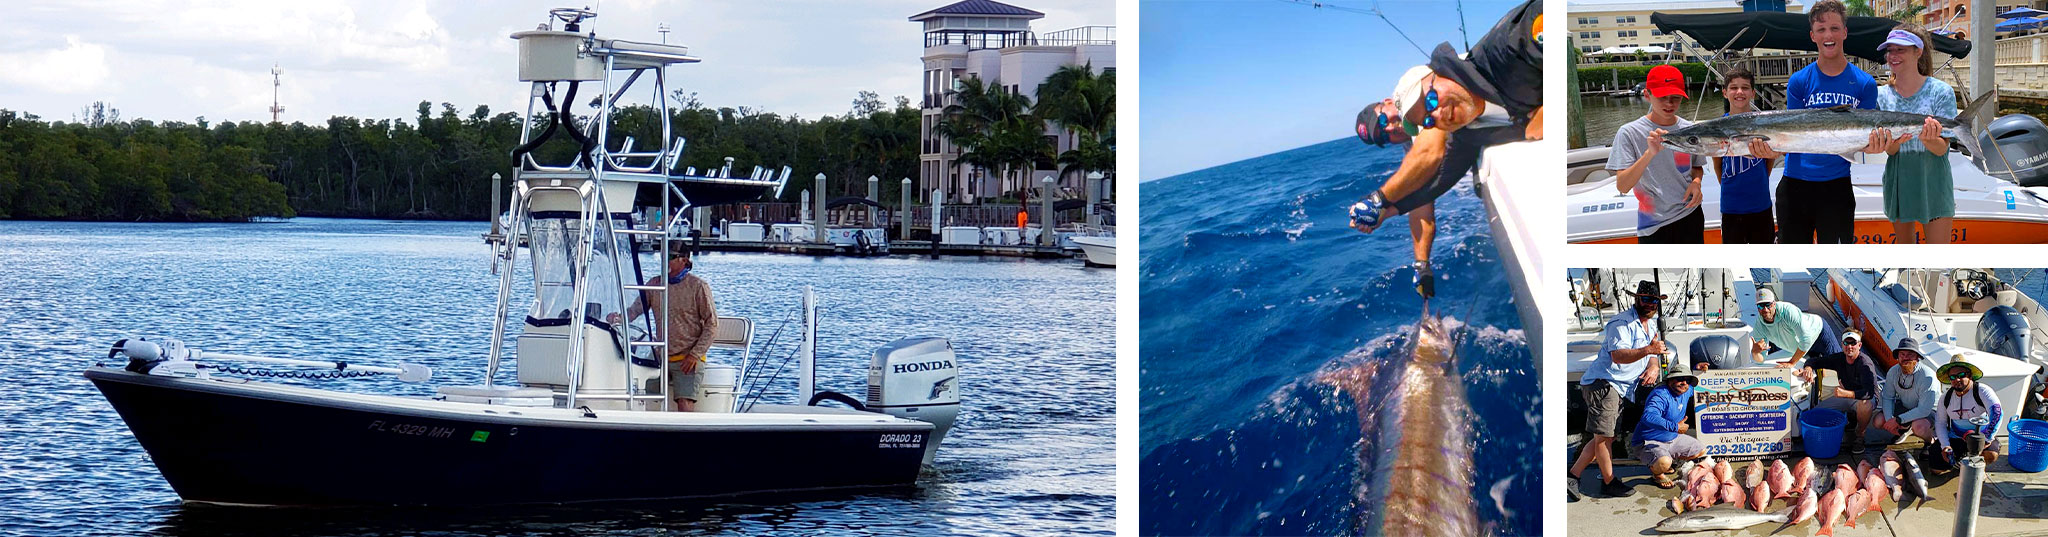 Our Fishing Charter | FishyBizness Fishing Charters & Boat Tours in Naples, Florida